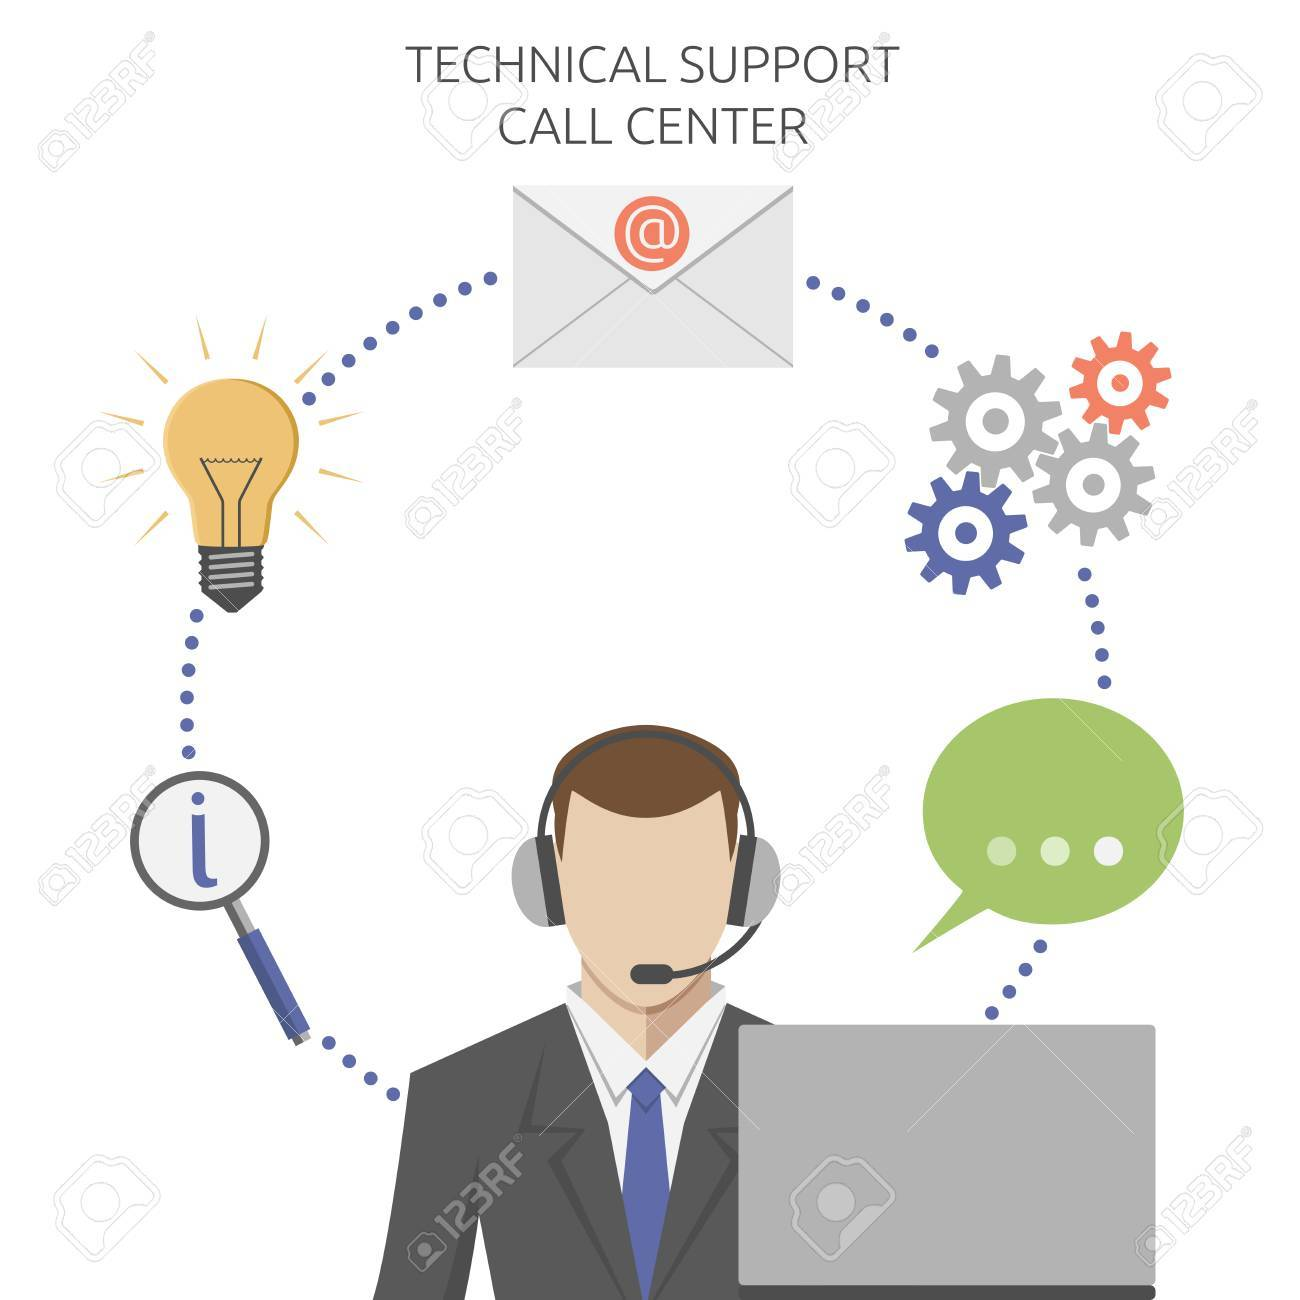 Man working in technical support call center, flat style. EPS 8 vector illustration, no transparency - 49484400